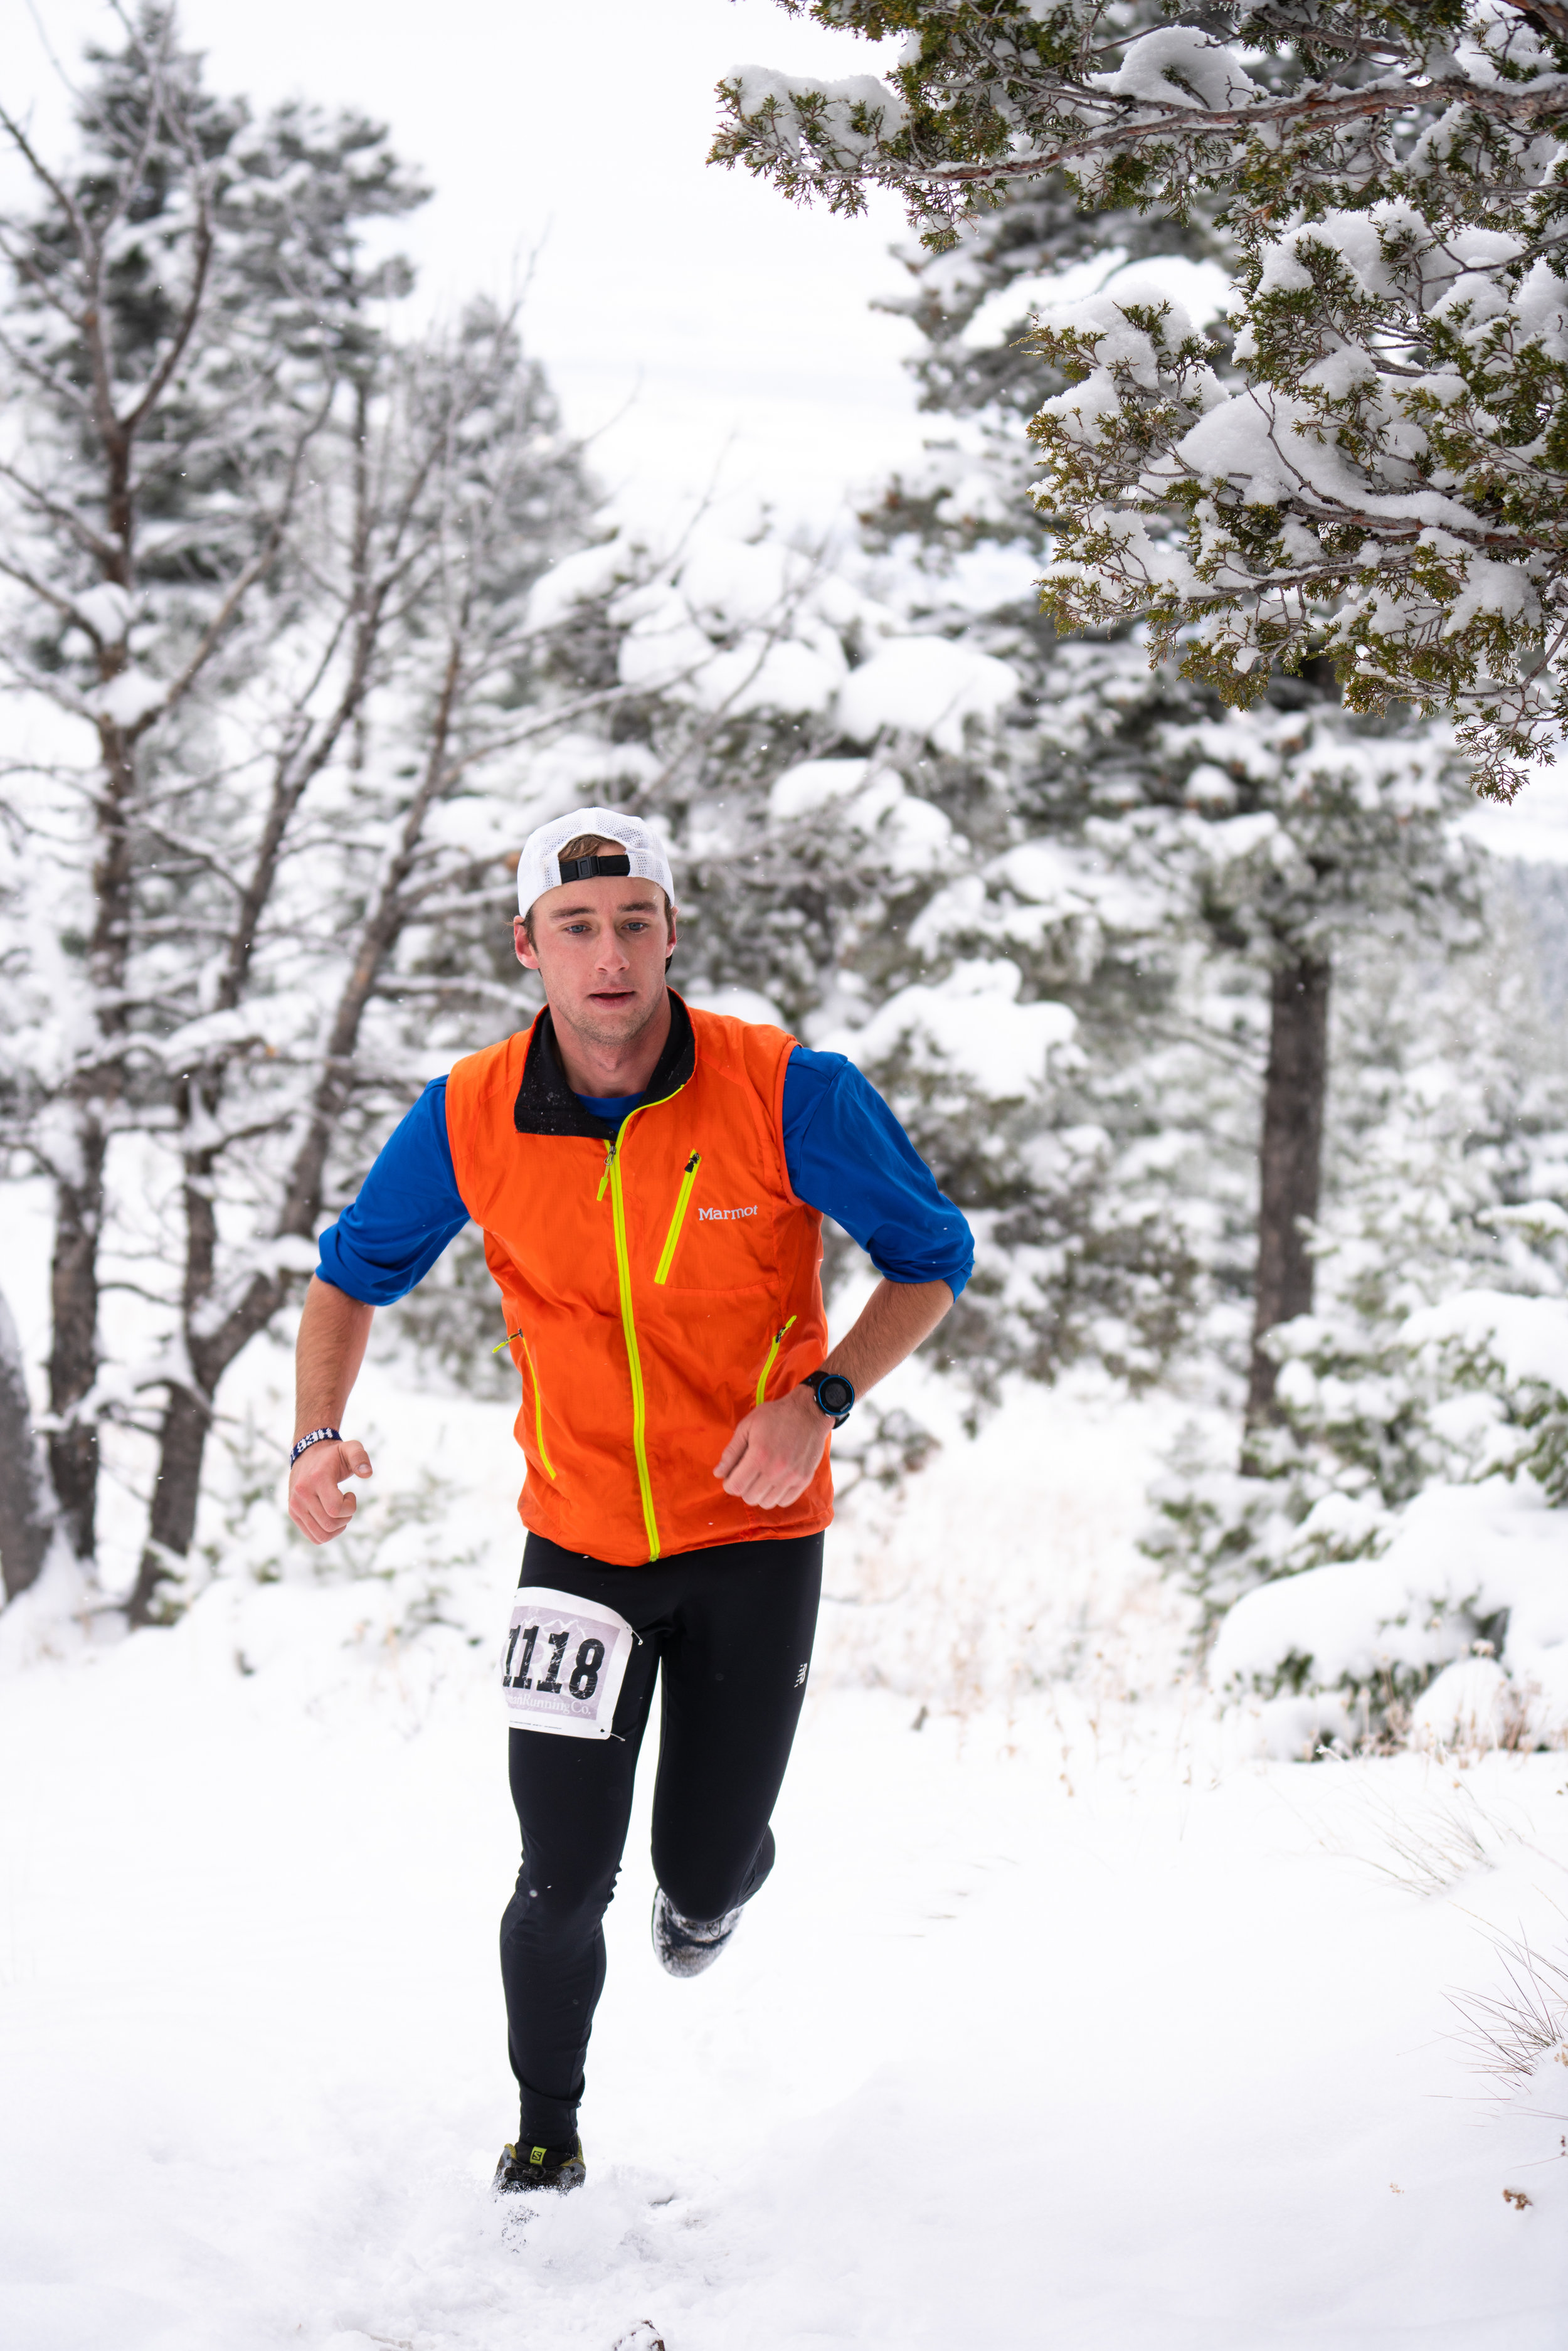 Runners battle winter snow that coats the Bridgers during Bozeman Running Co. racing of the Foothills 14k up Sypes Canyon.